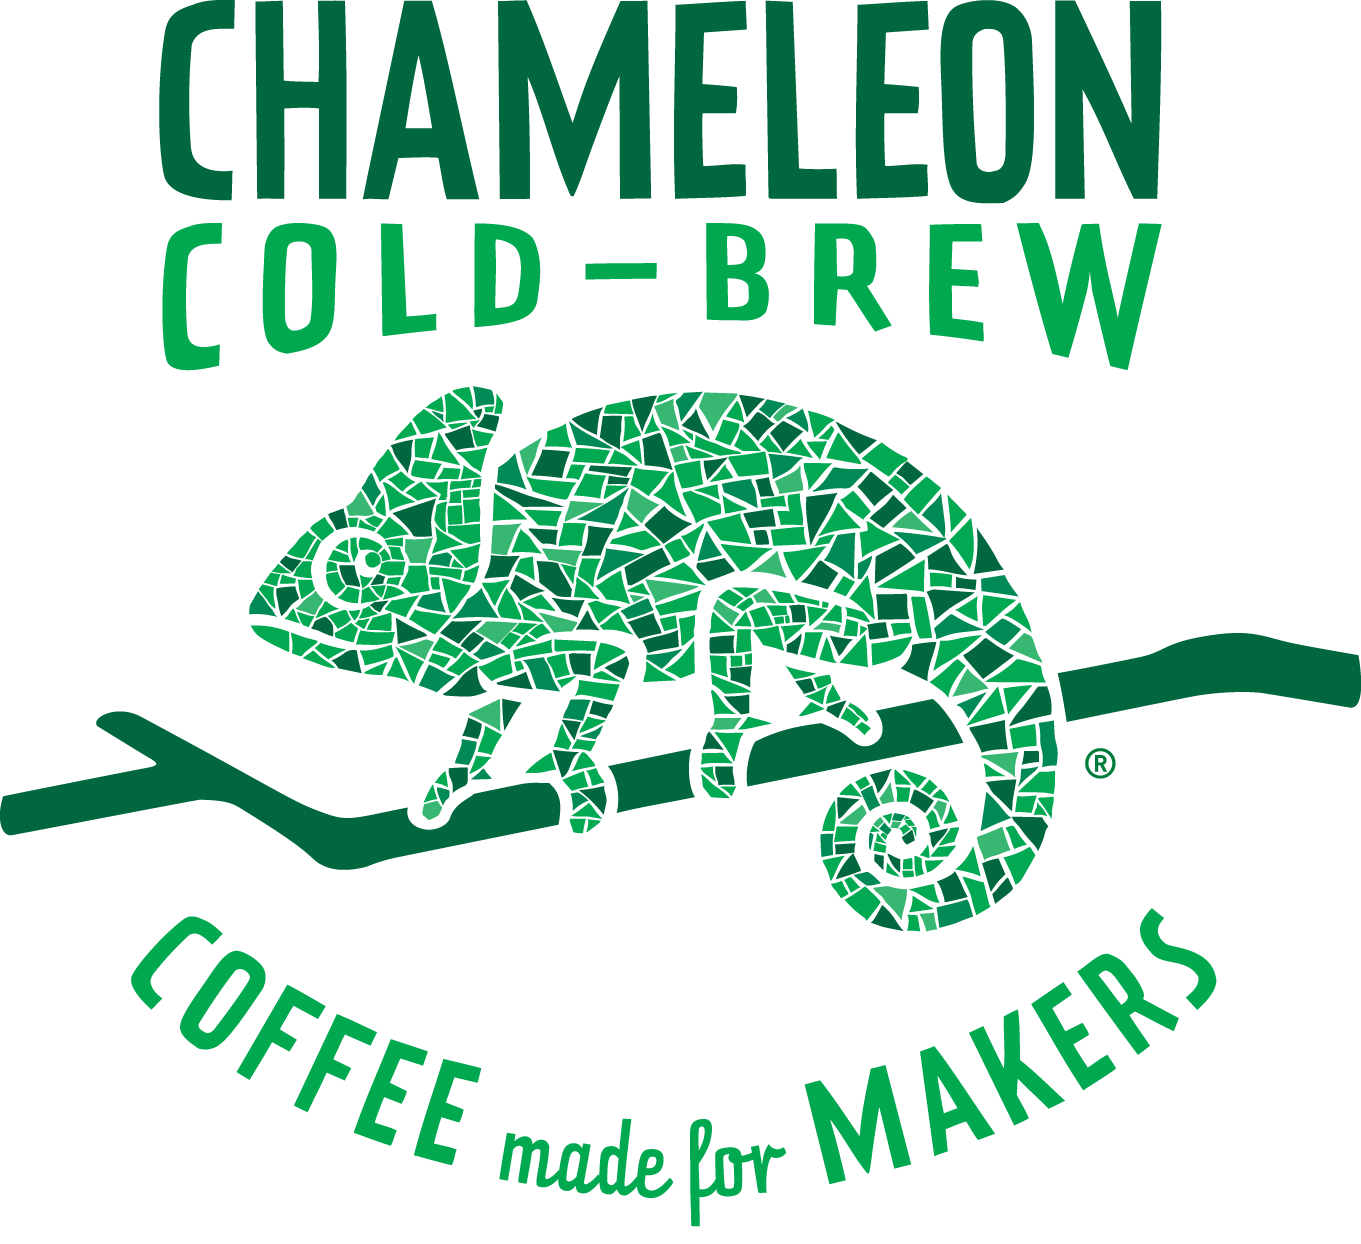 chameleon cold brew coffee